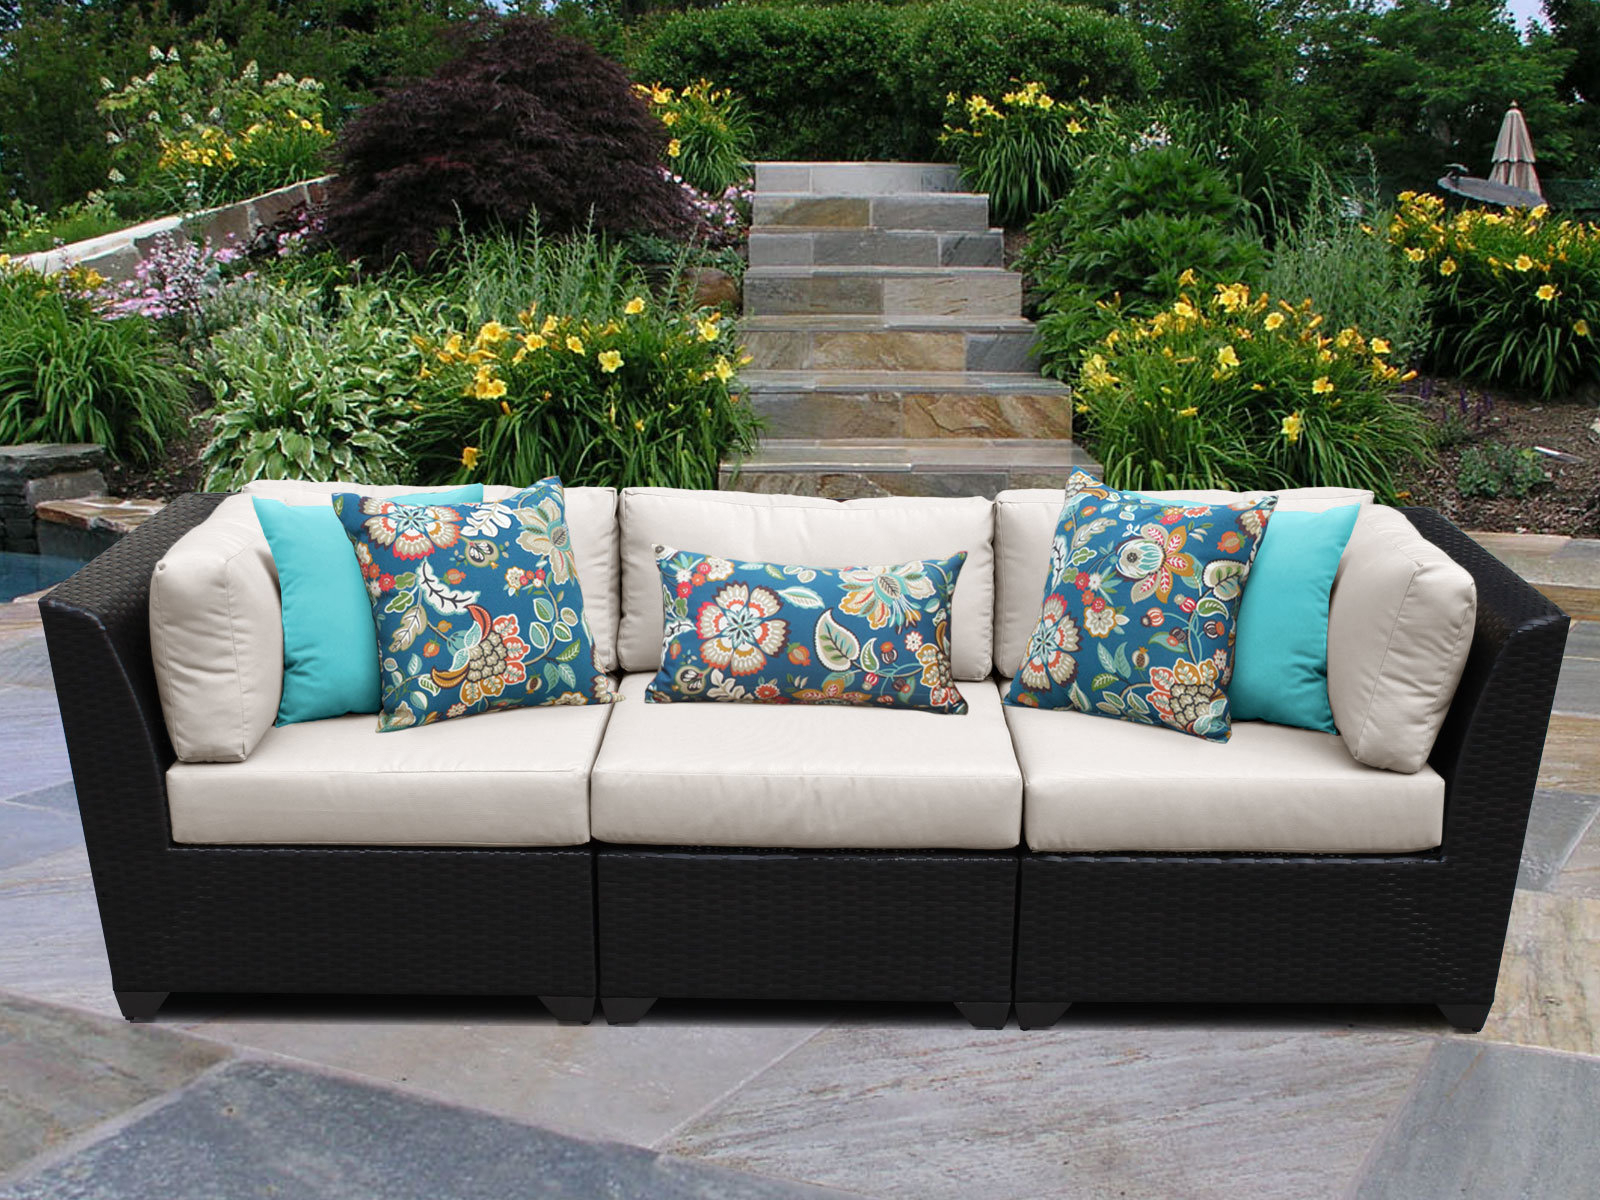 Recent Camak Patio Sofas With Cushions Inside Camak Patio Sofa With Cushions (View 19 of 20)